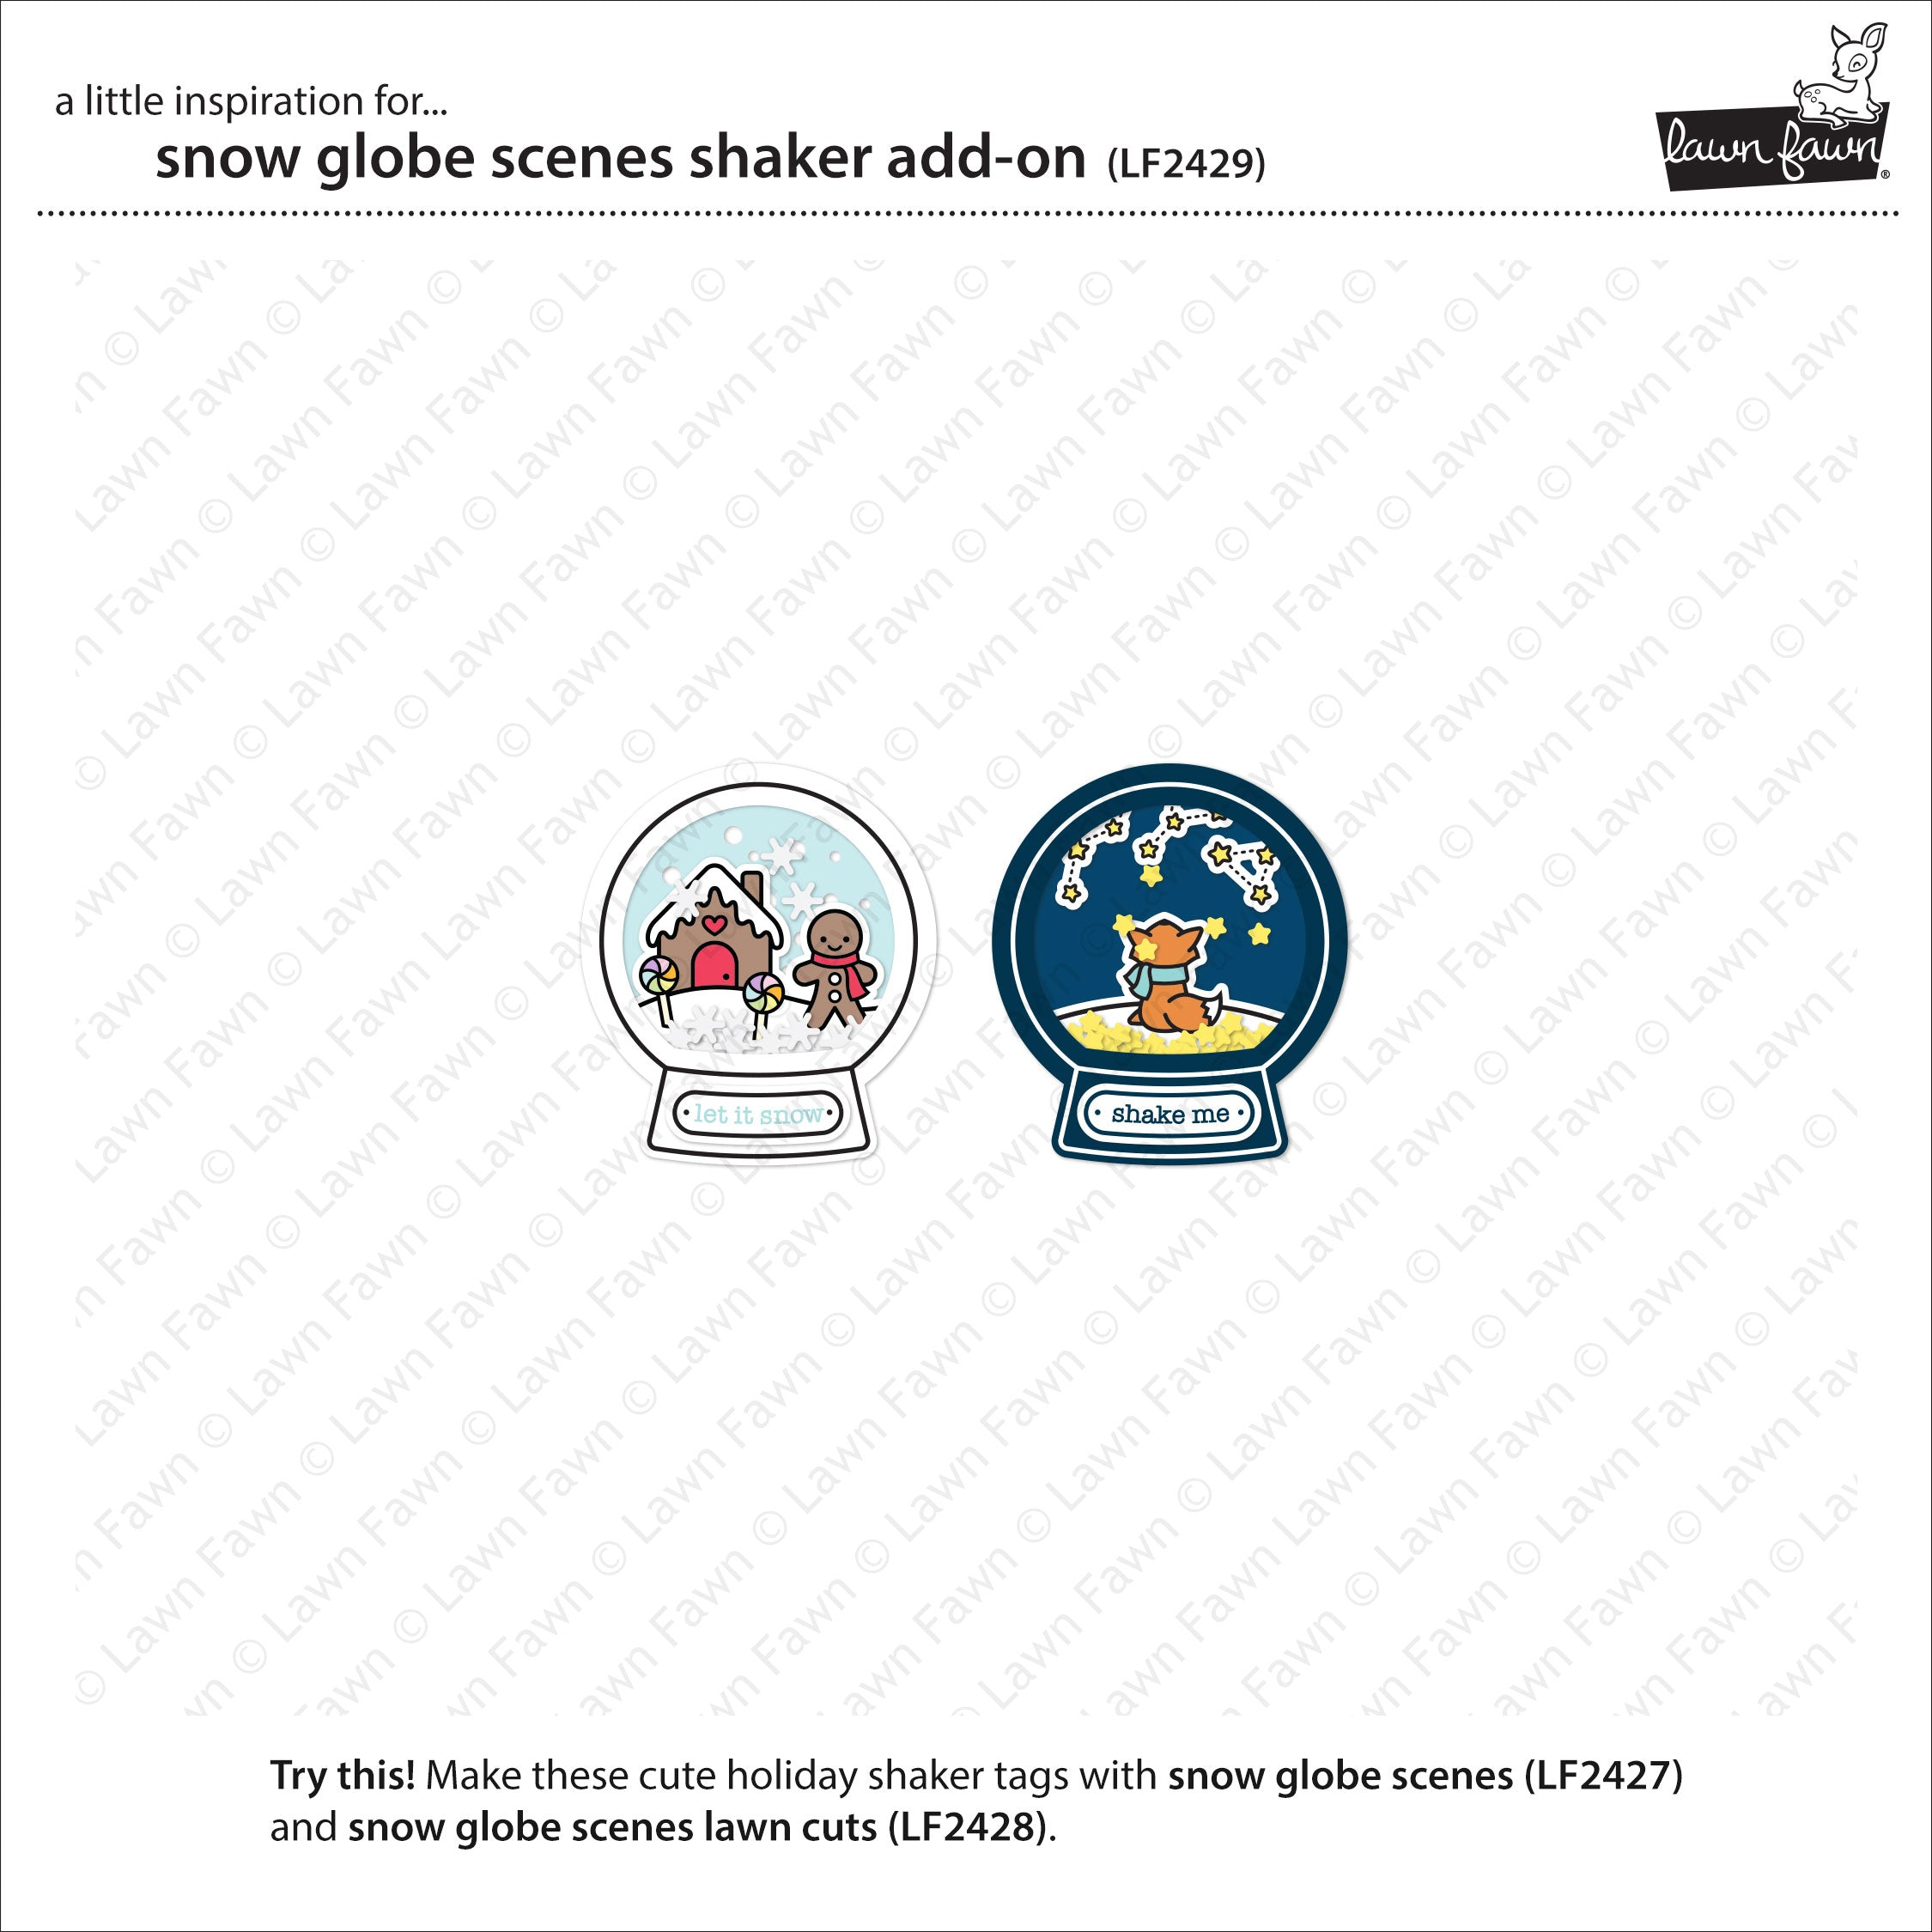 snow globe scenes shaker add-on